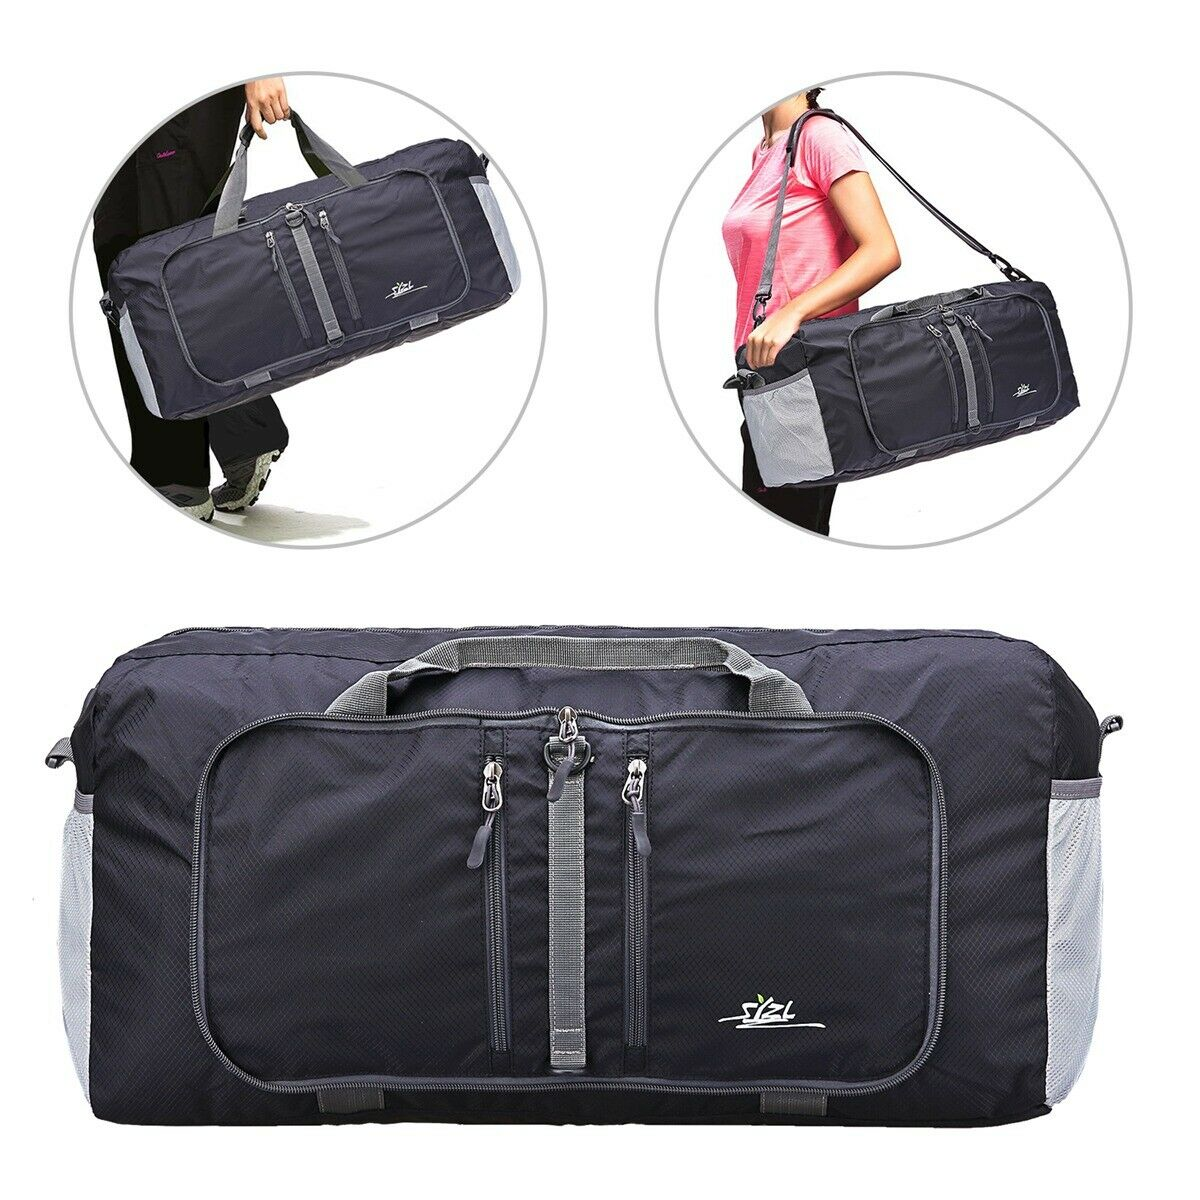 Foldable Duffle Tote Bag 40L for Travel Gym Sports Packable